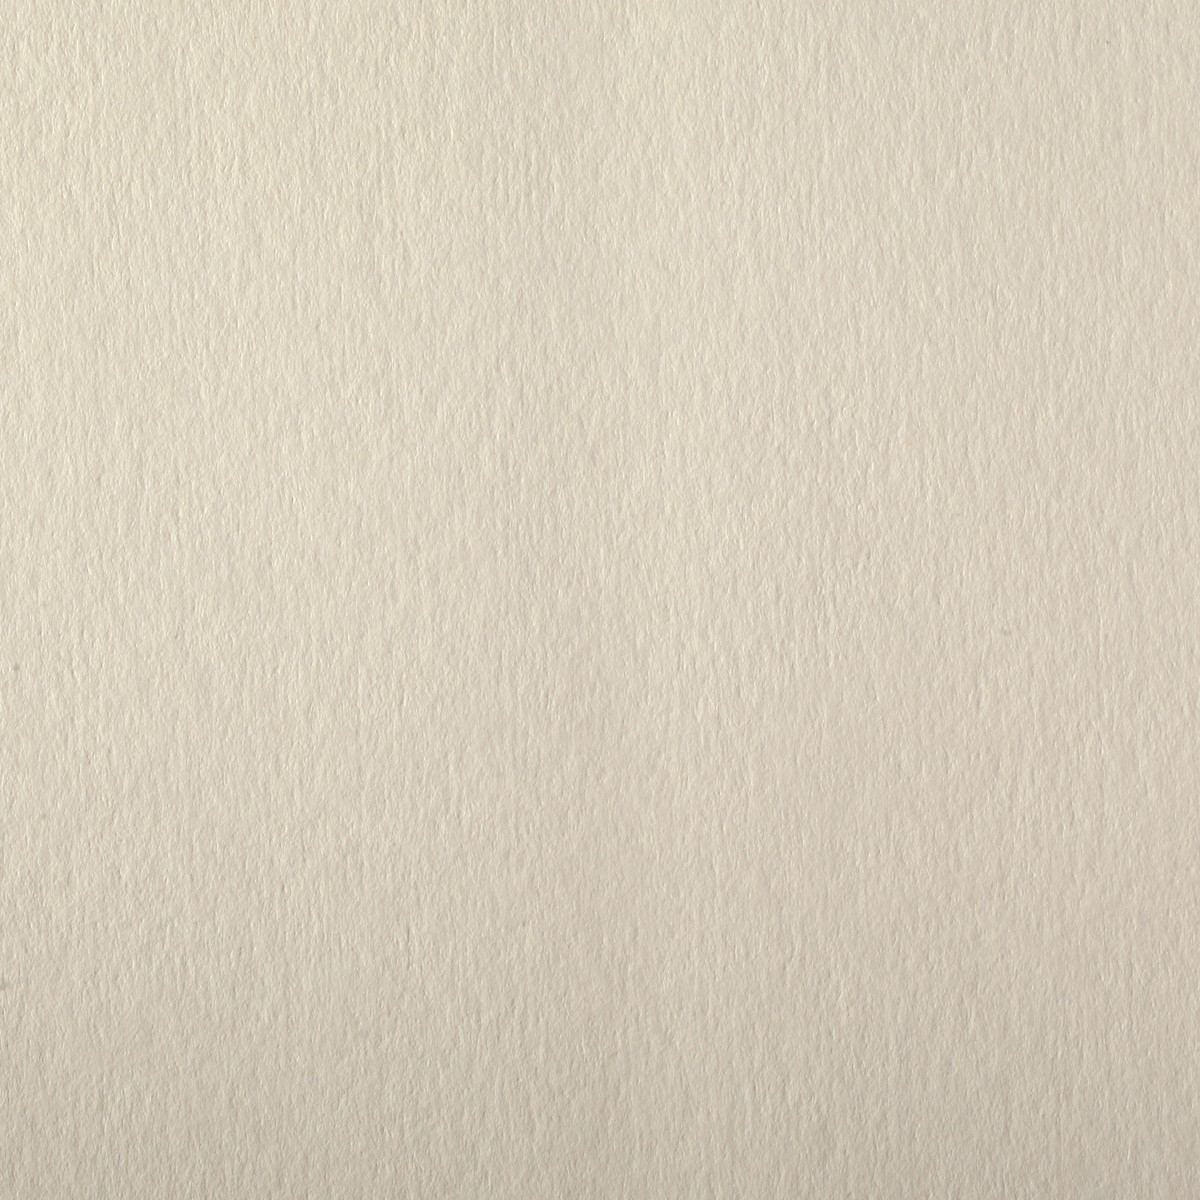 """Colorplan China White 12 1/2"""" x 19"""" 100# Cover Sheets Pack of 50"""